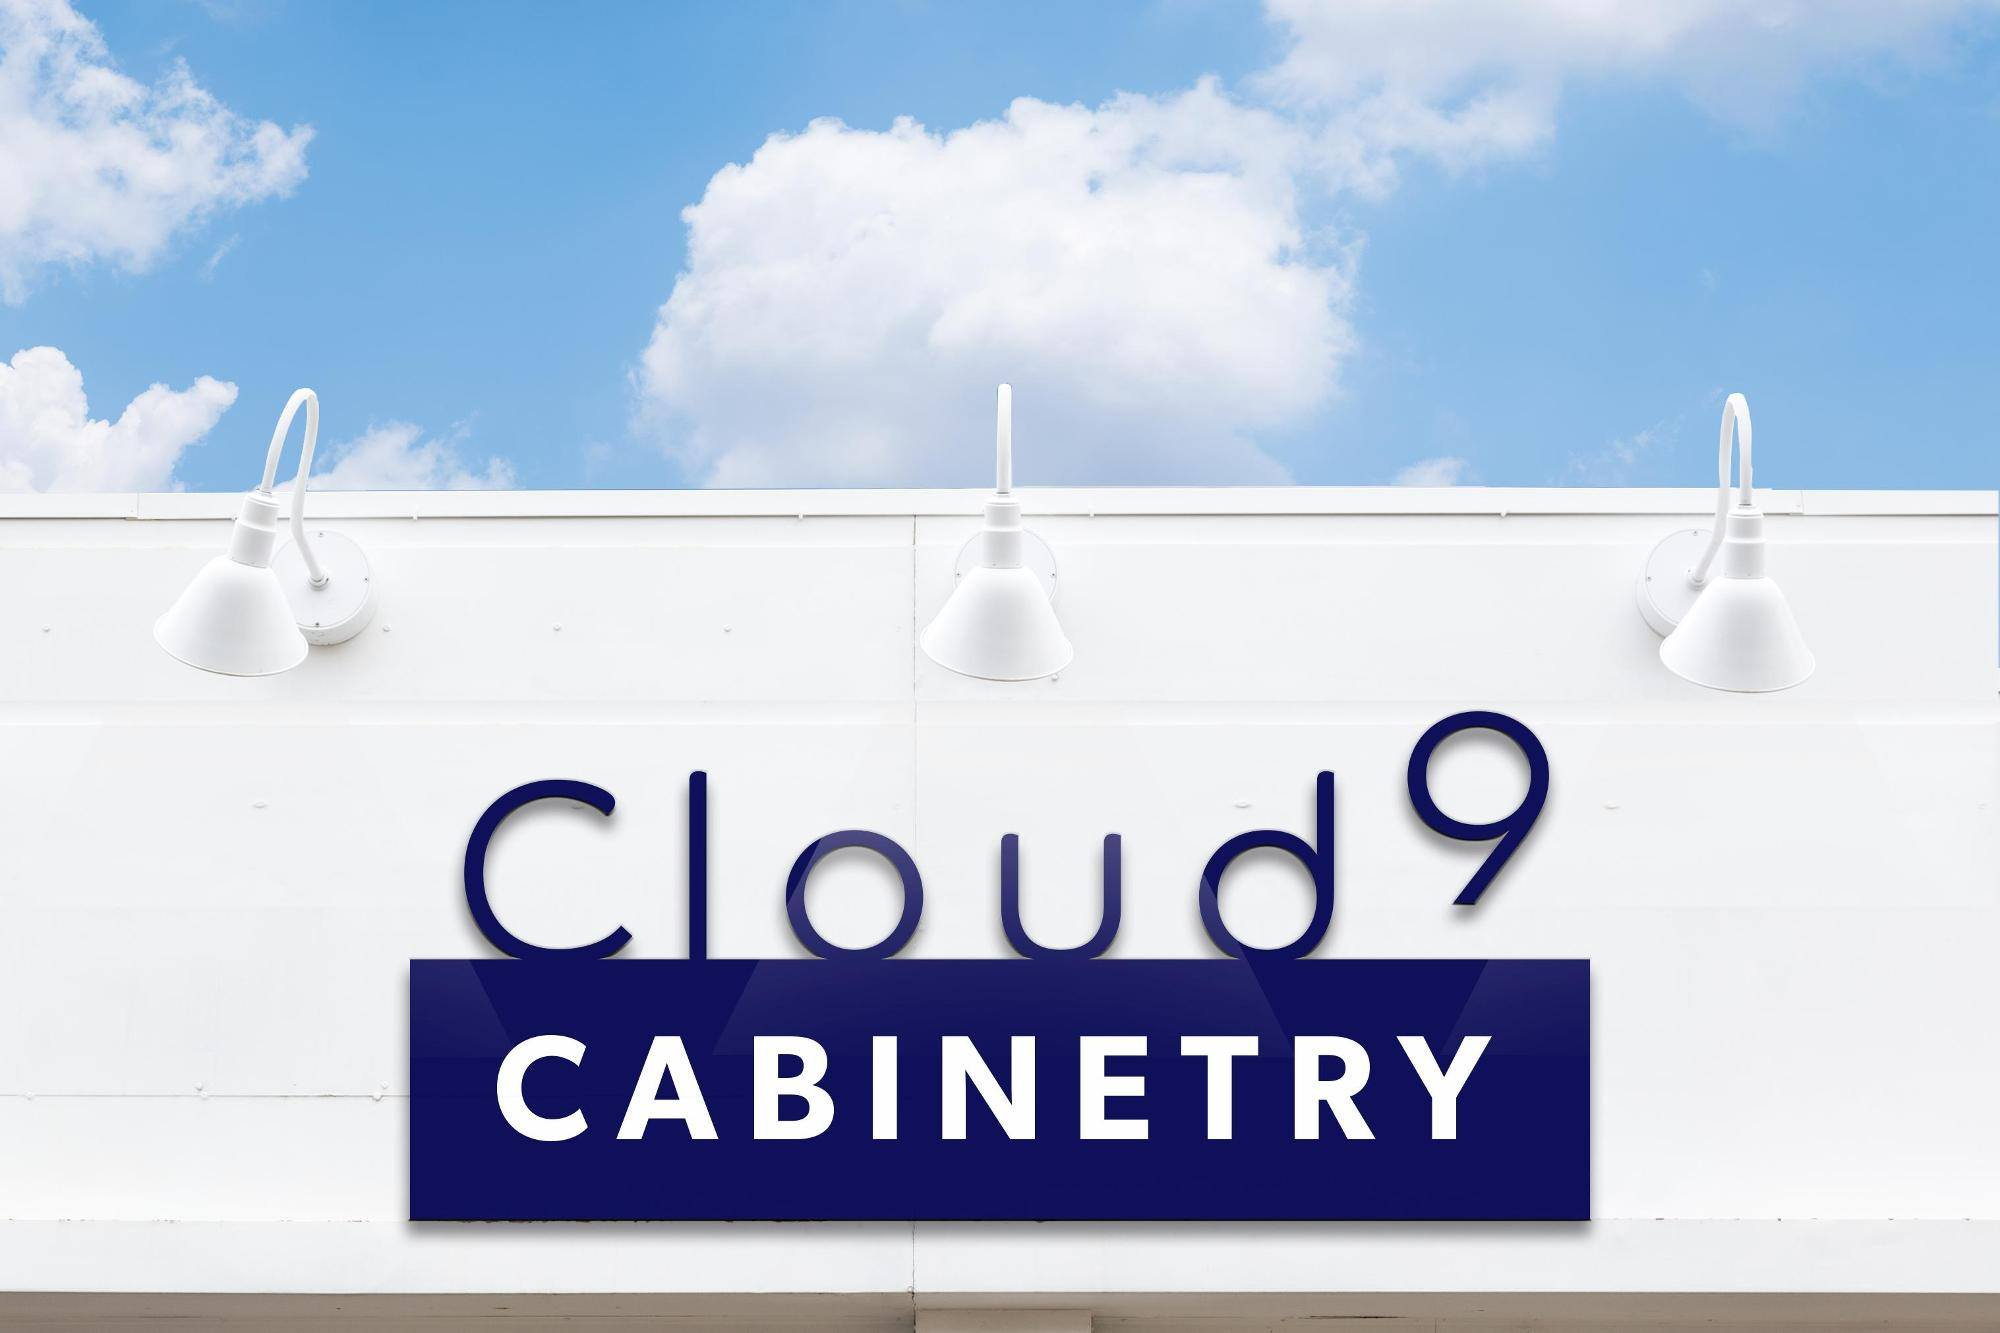 CLOUD 9 CABINETRY